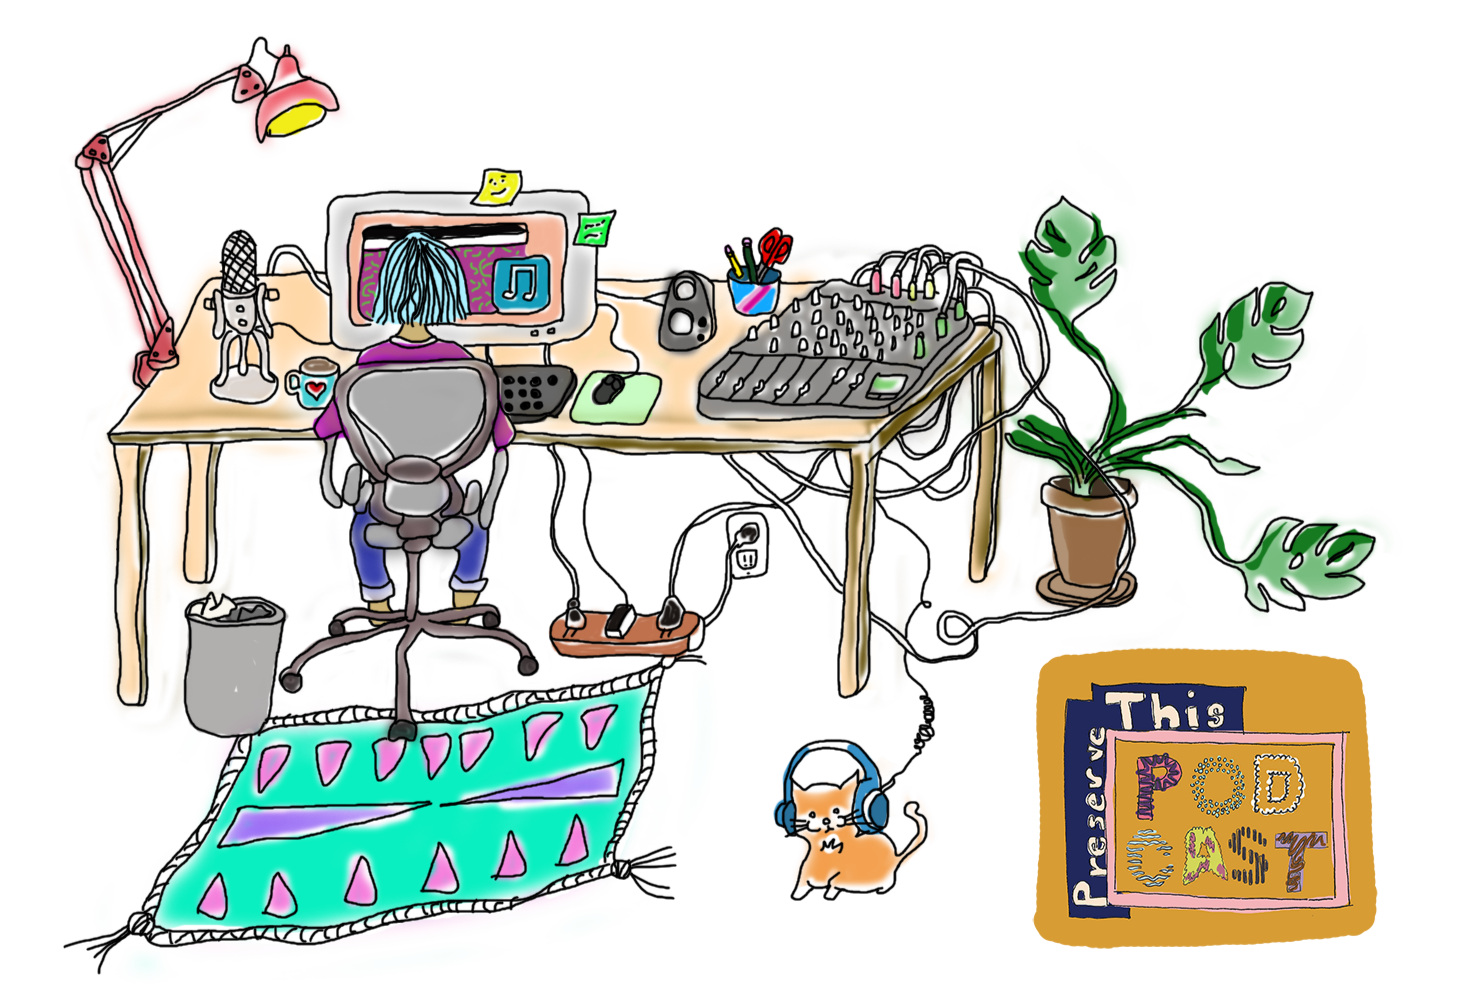 poddesk_drawnlogo.jpg